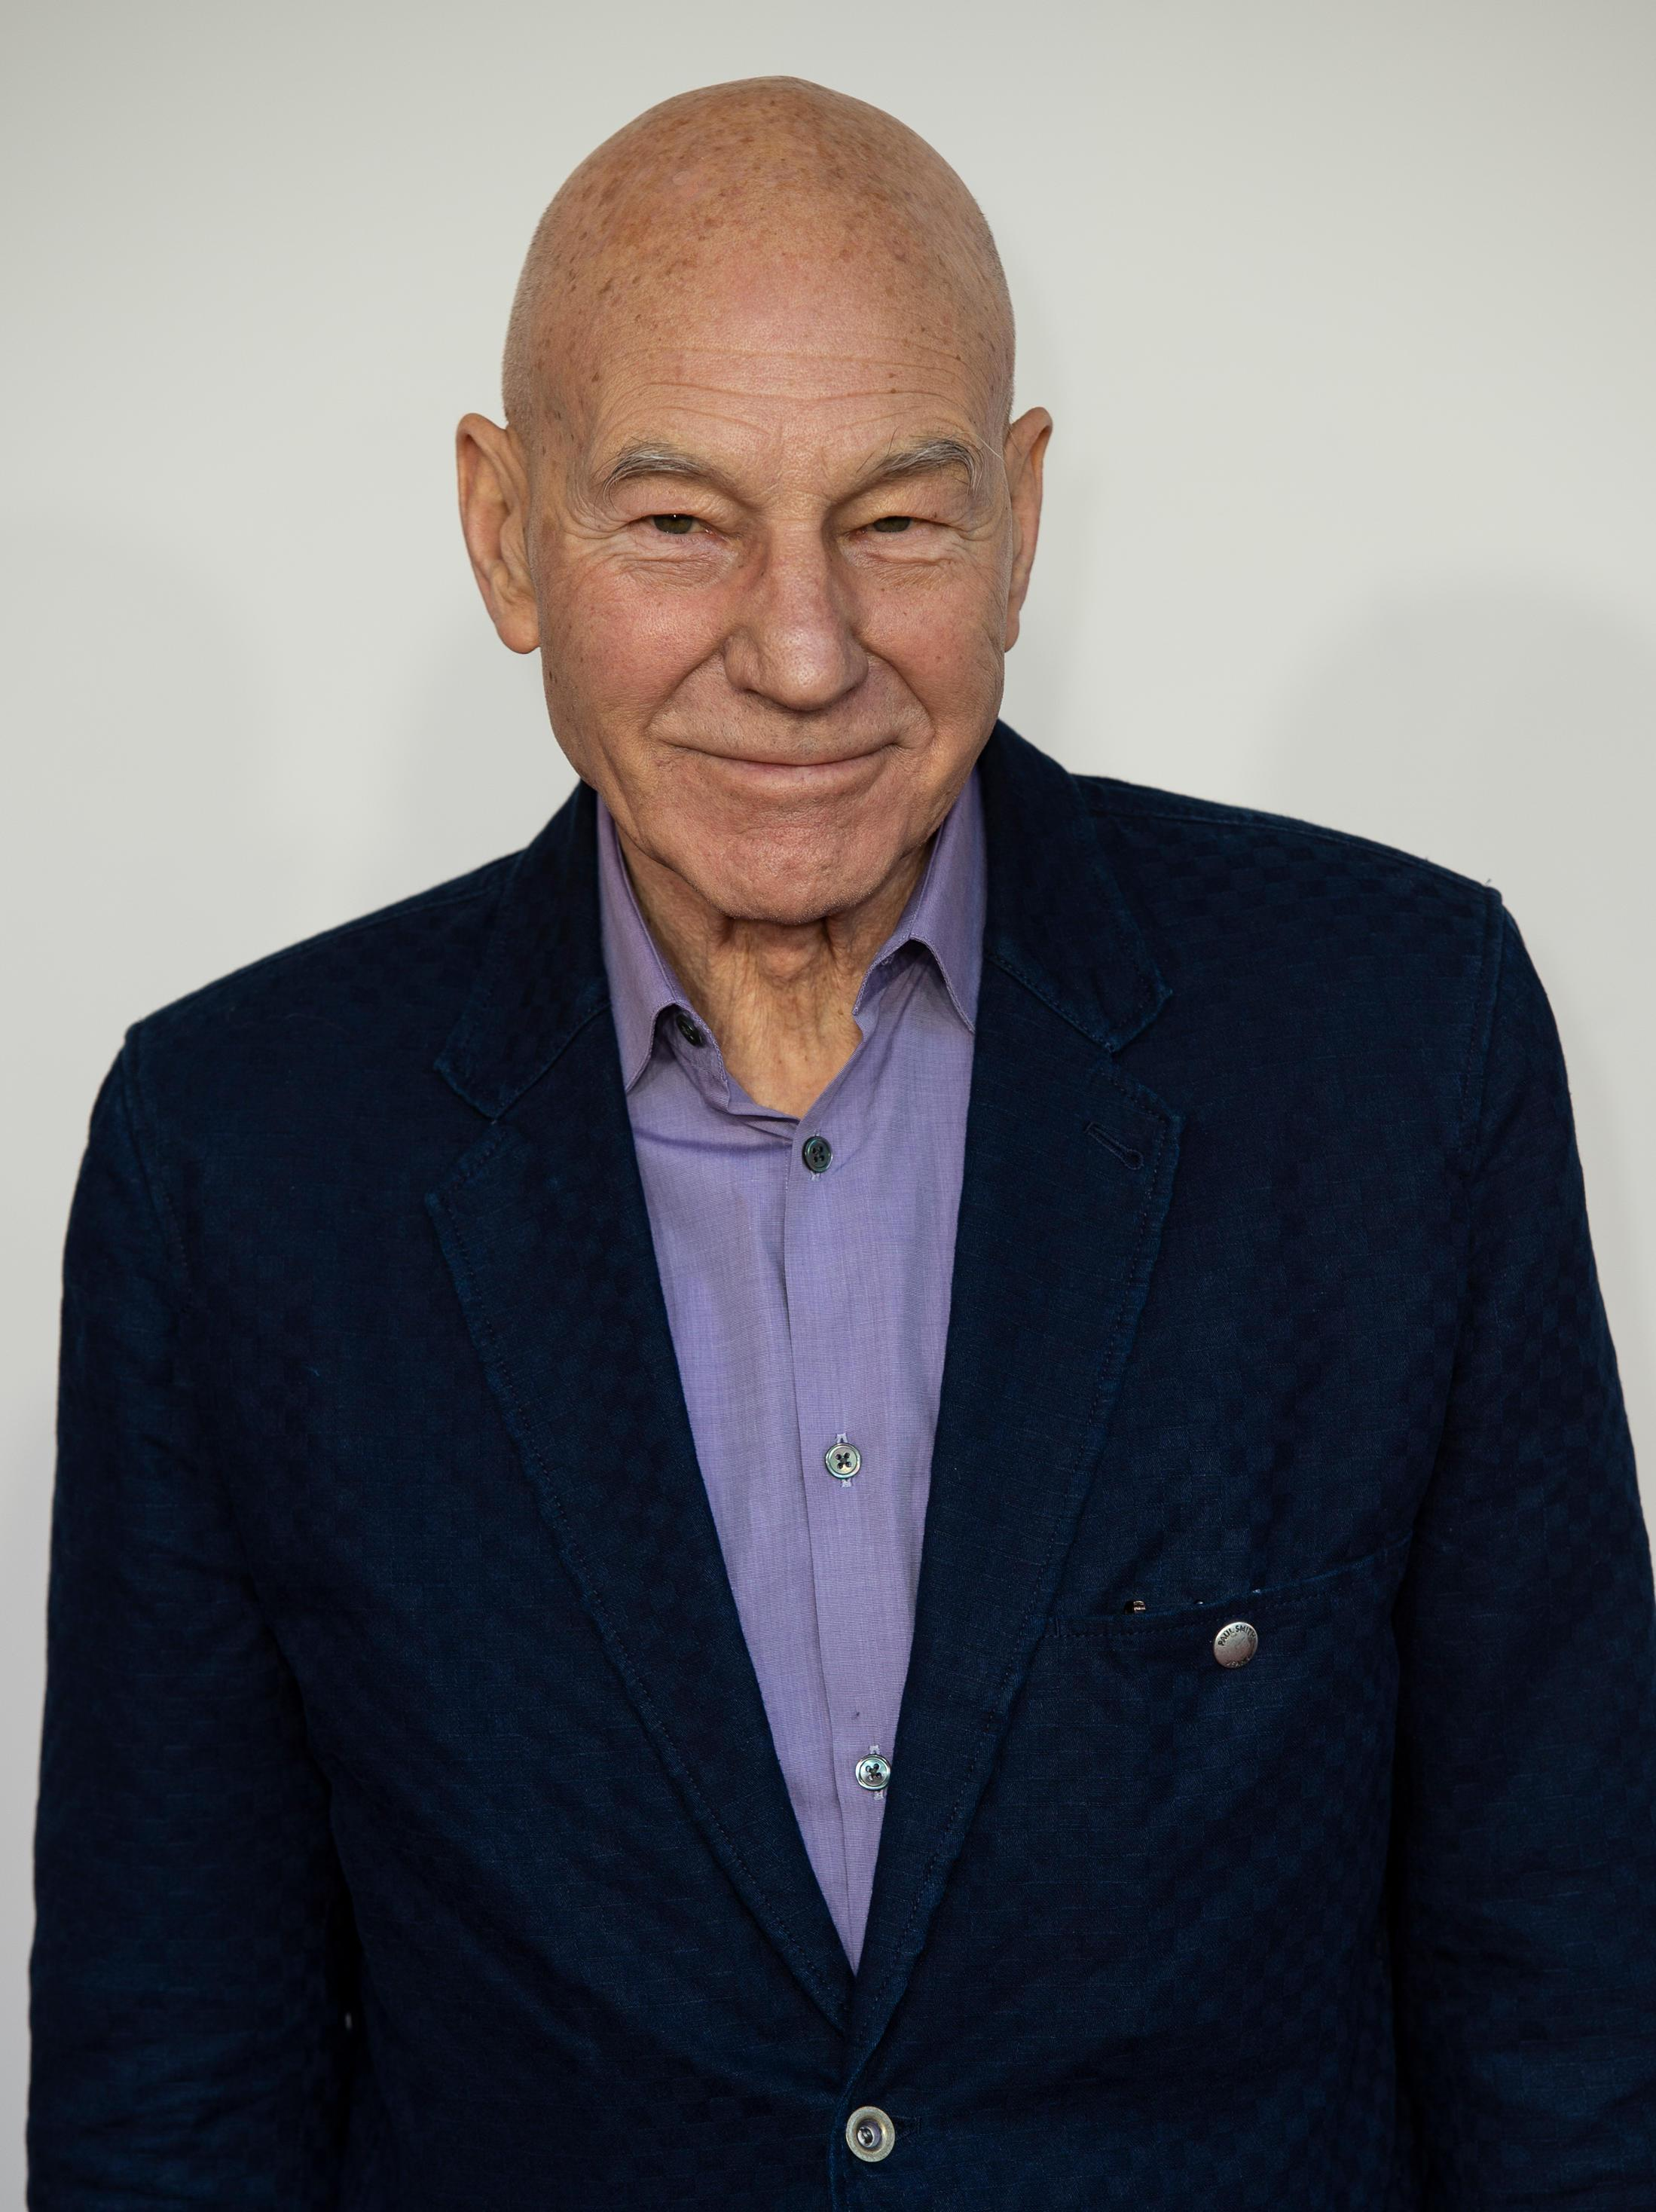 Sir Patrick Stewart says politicians are 'self-interested ...